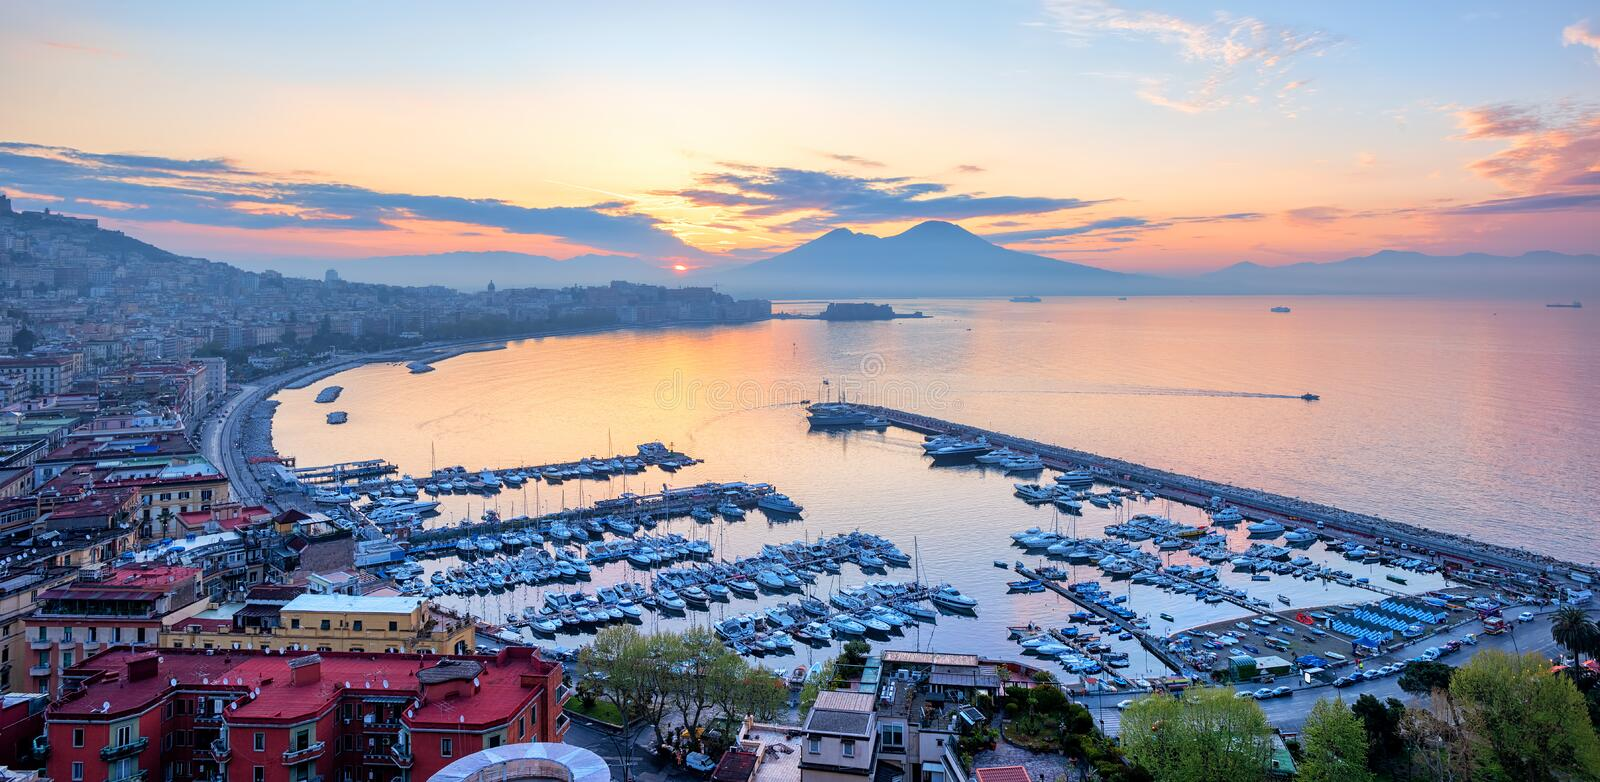 Panoramic view of Naples city, Italy, at sunrise stock photos